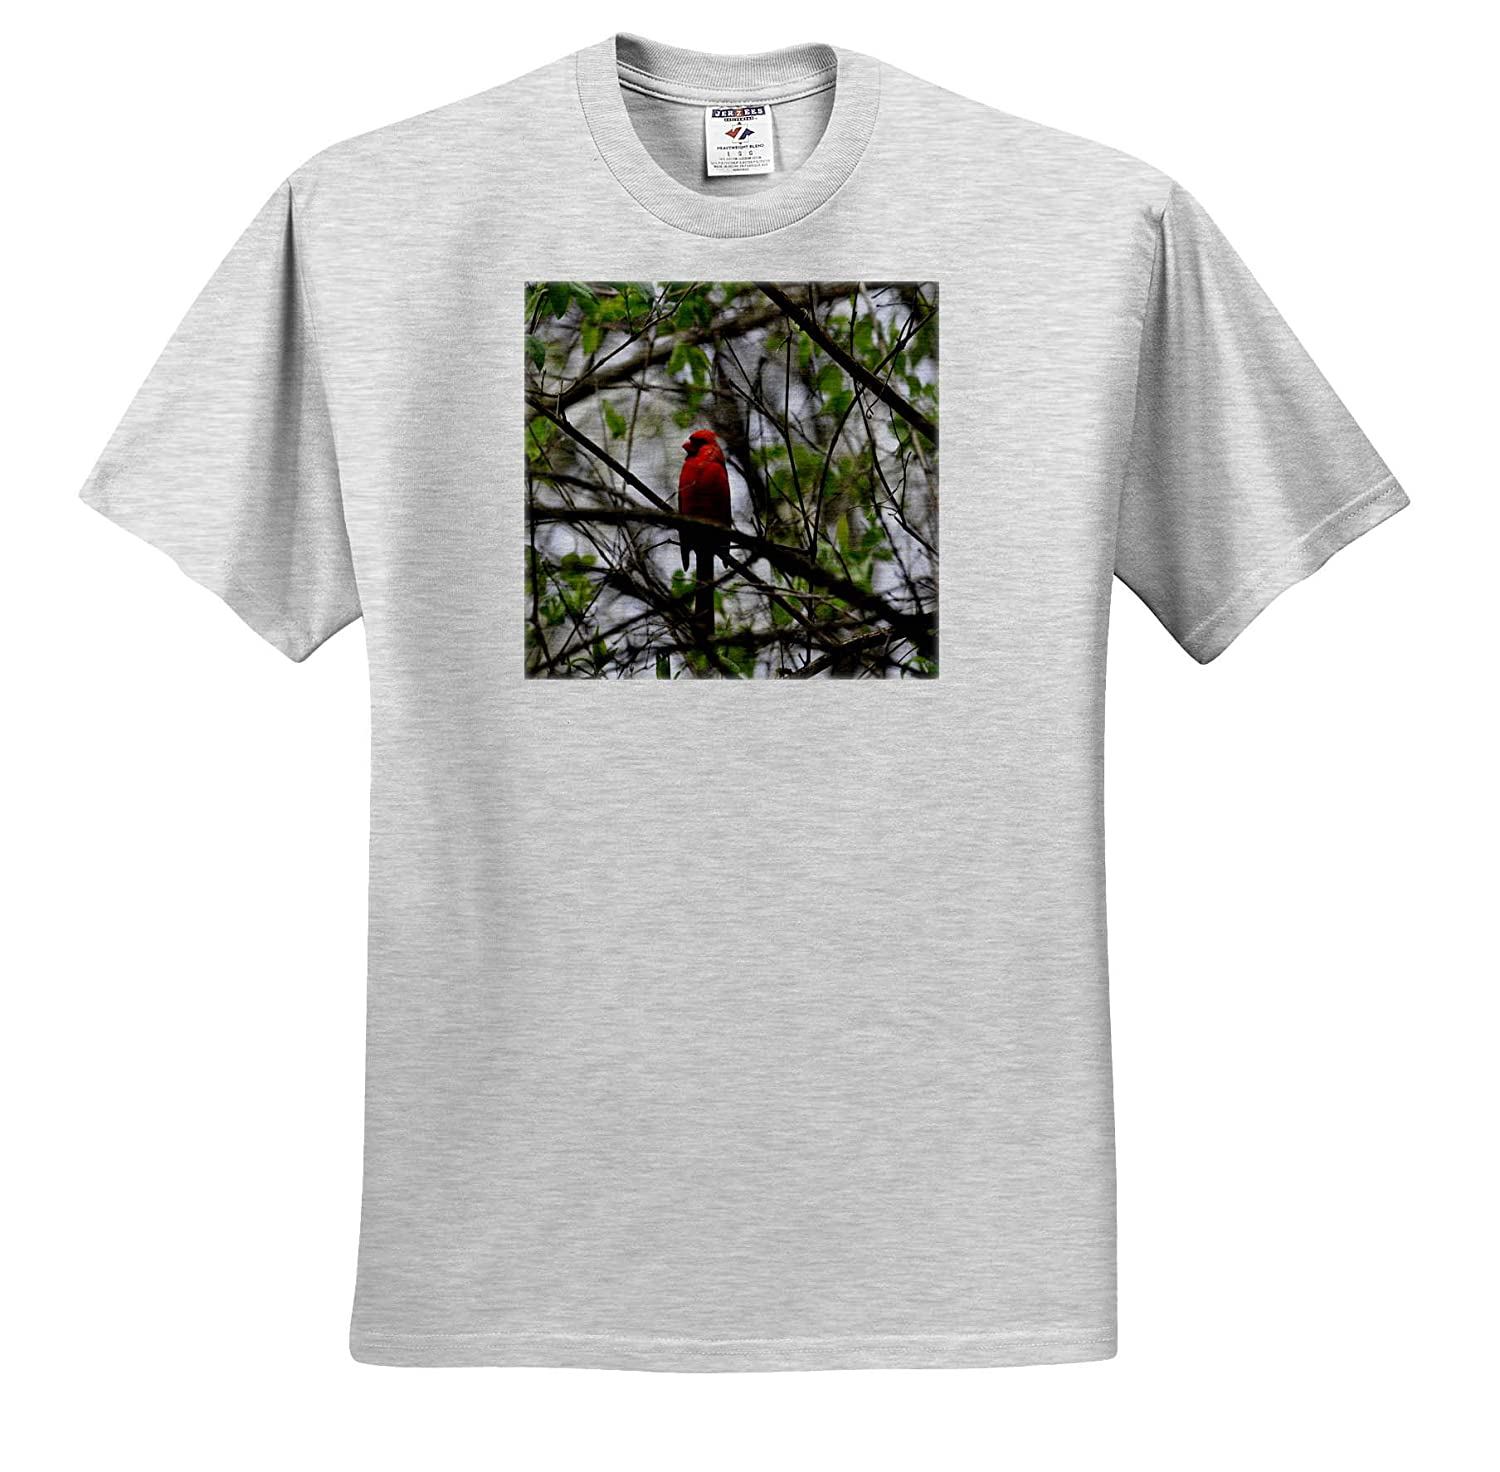 Adult T-Shirt XL 3dRose Dreamscapes by Leslie Birds ts/_314245 Cardinal Perched in a Tree